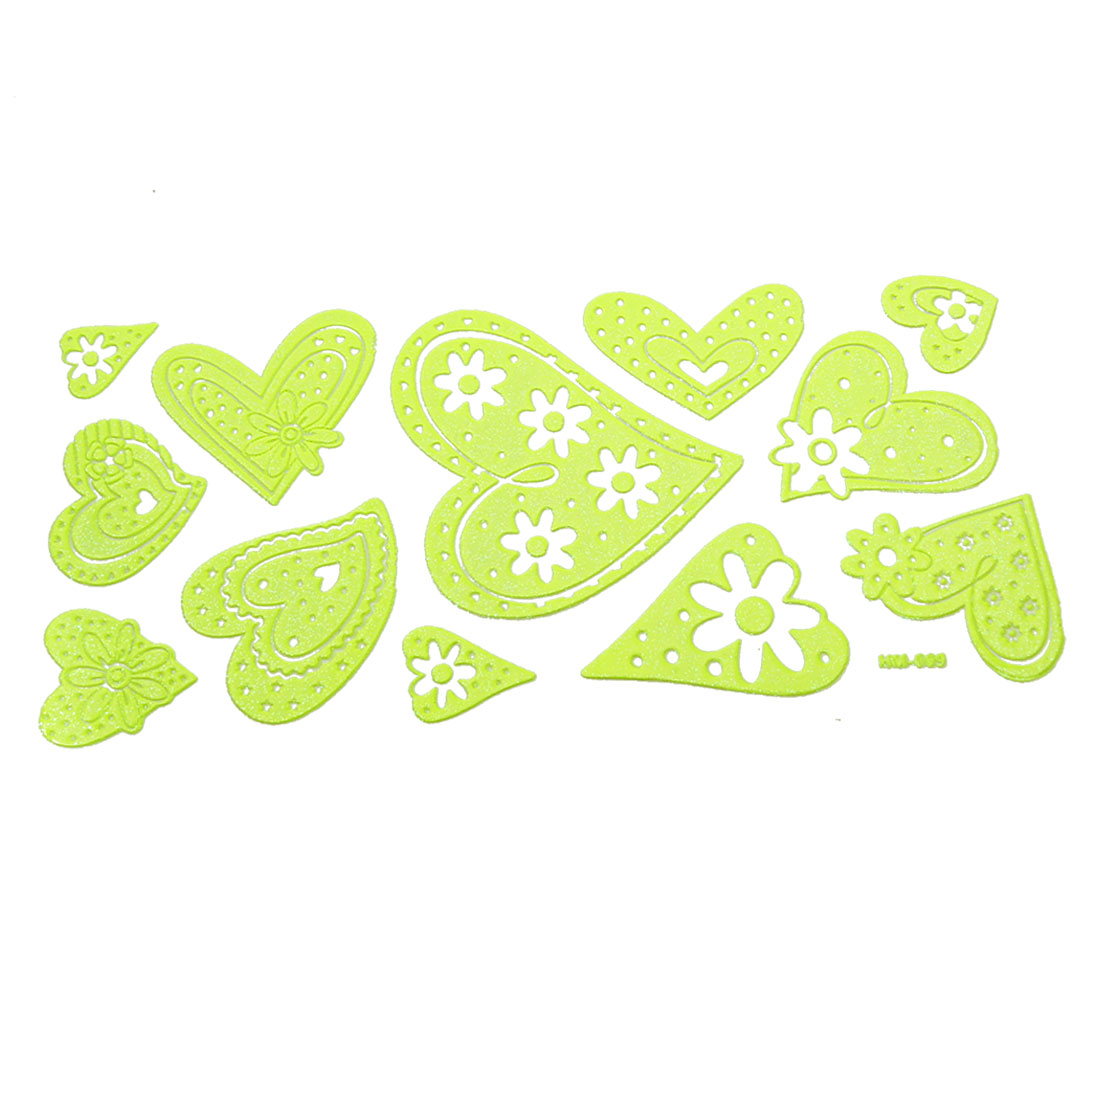 Room Decor Flower Heart Design Light Green Luminous Stickers 13 in 1 Set